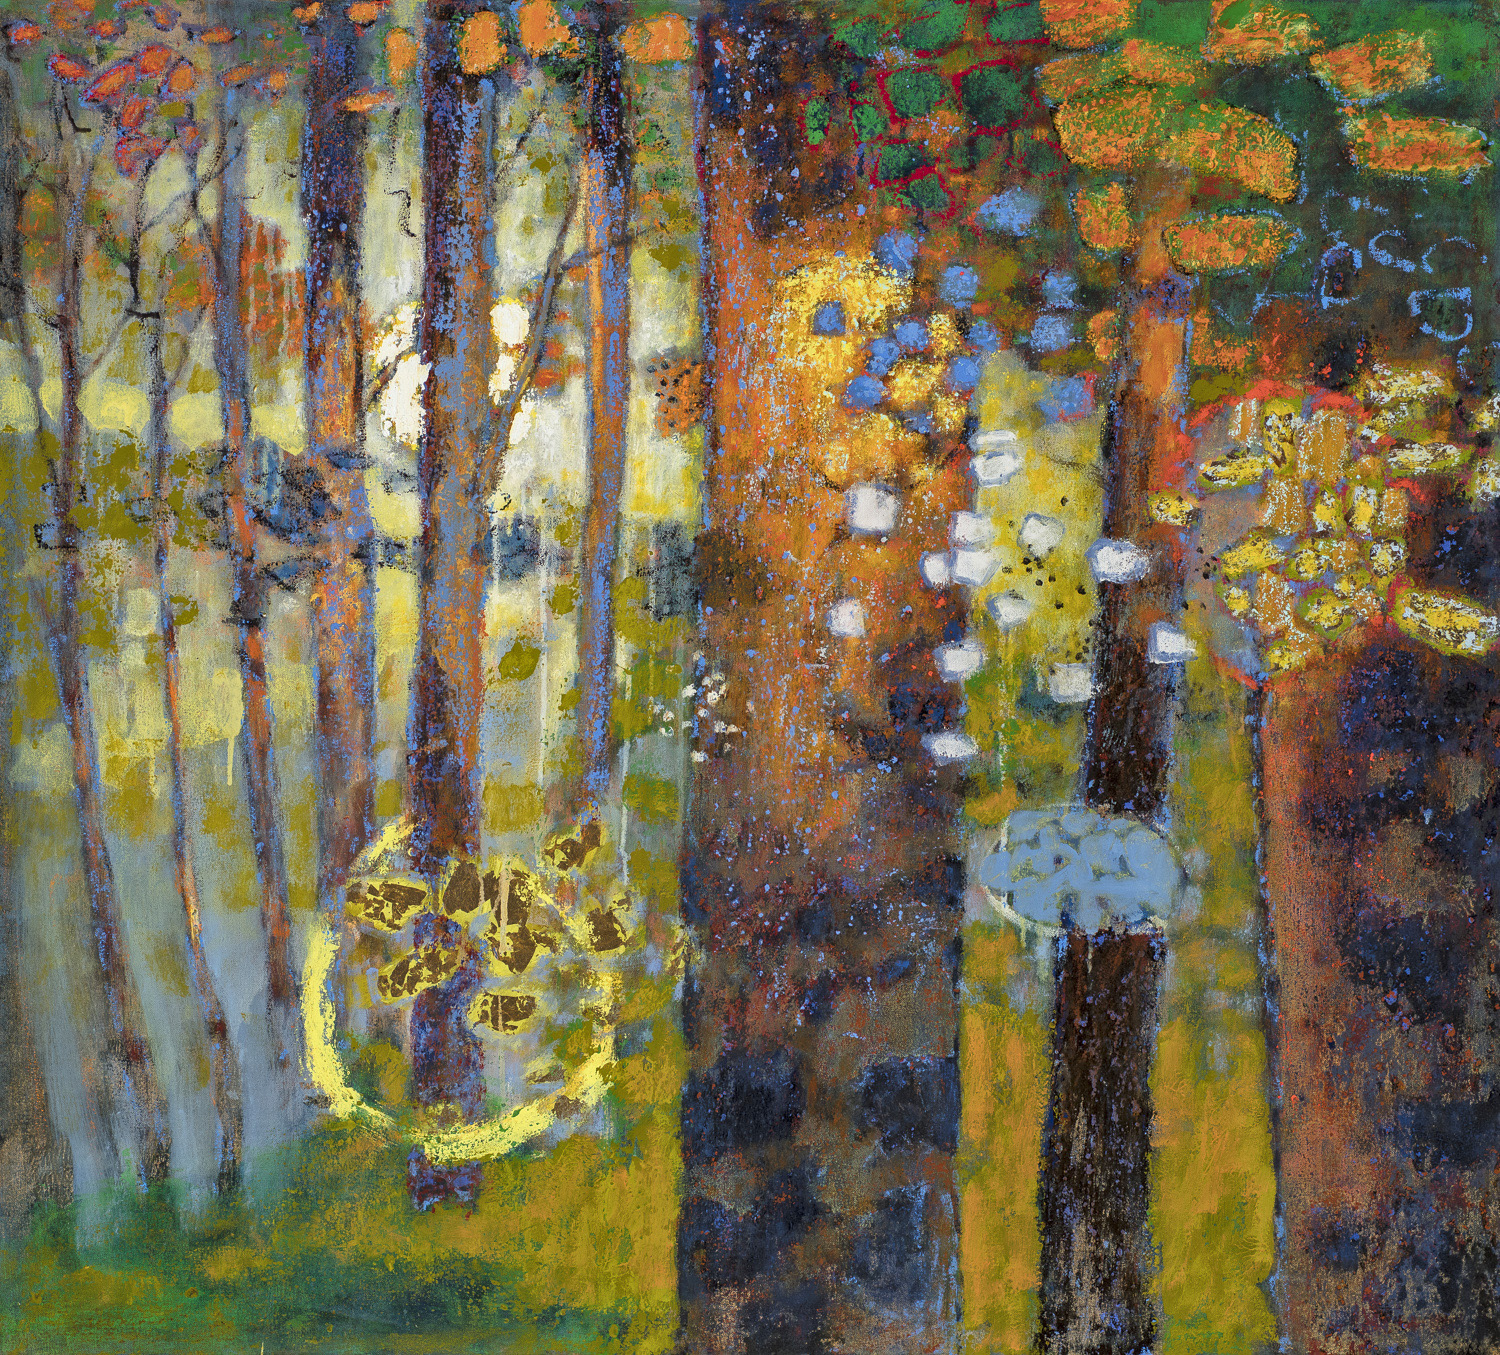 Presence of Longing  | oil on canvas | 36 x 40"